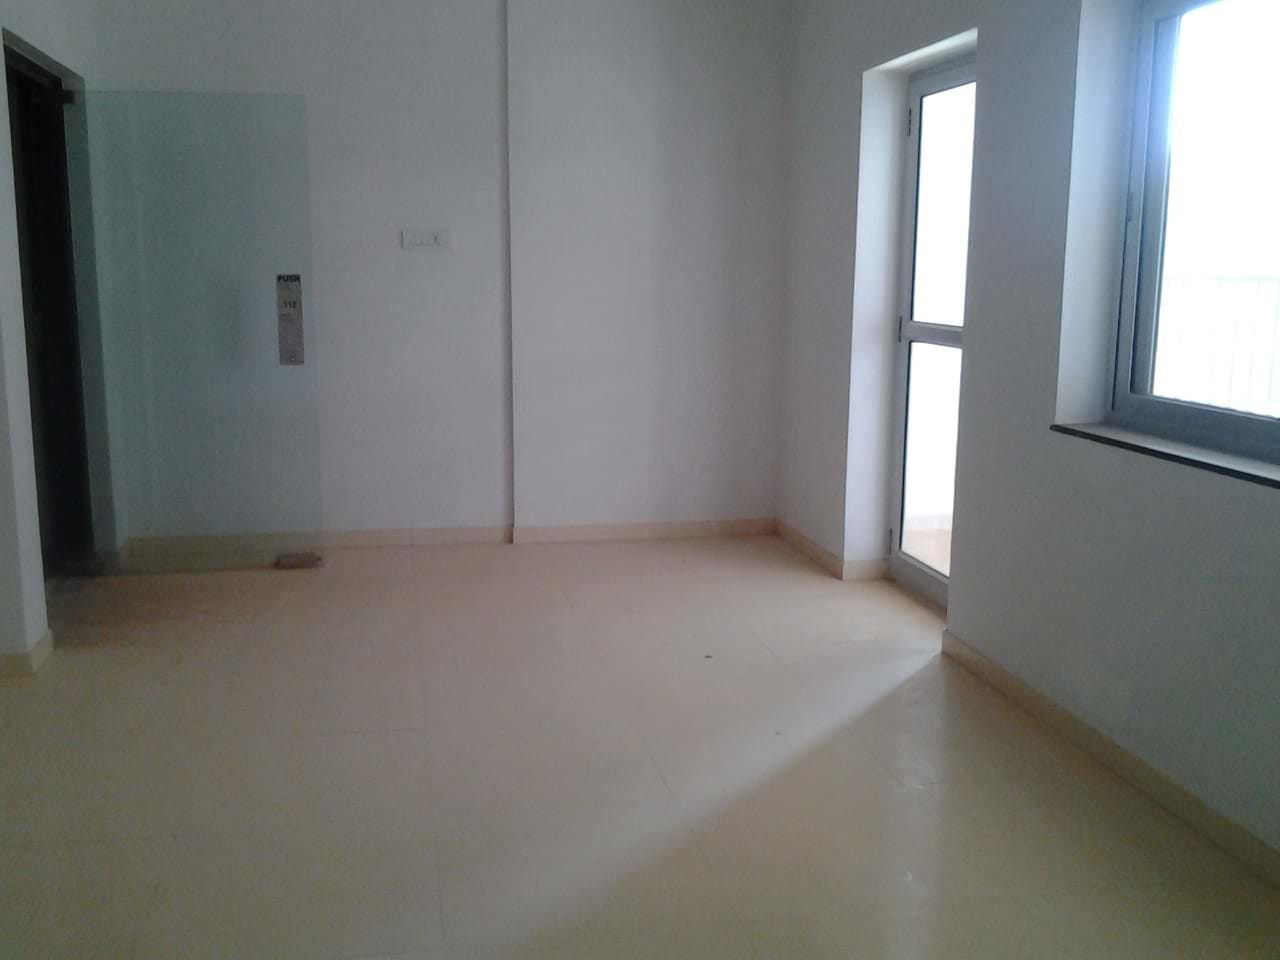 Office available at Gera Imperium II, Patto Plaza Panaji 22,000/- per month